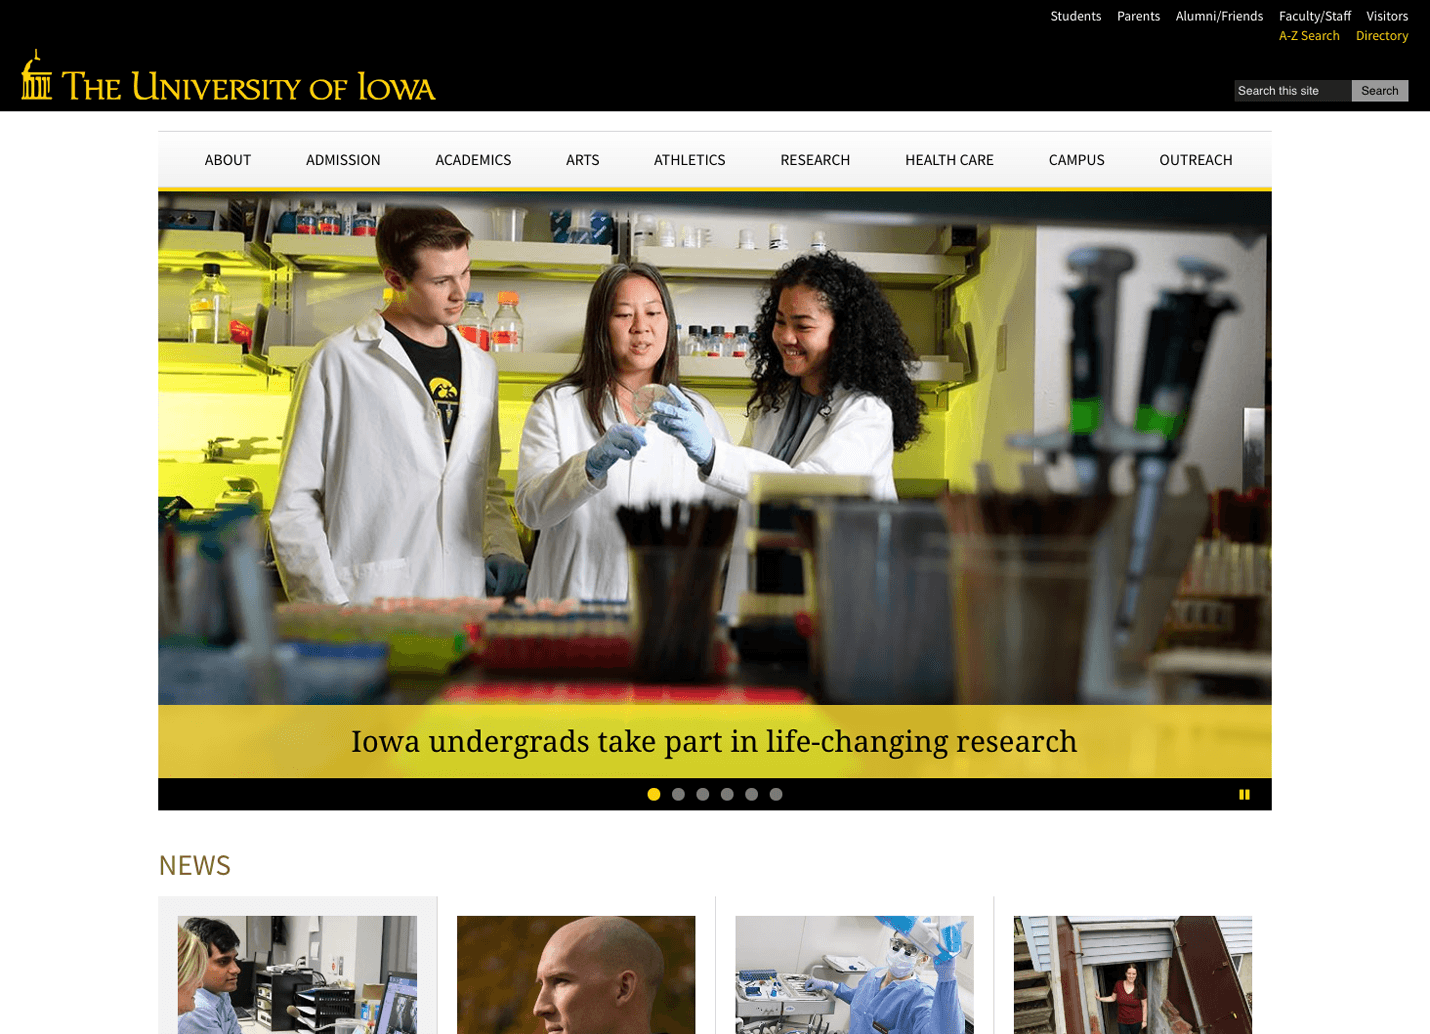 The University of Iowa Website Home Page